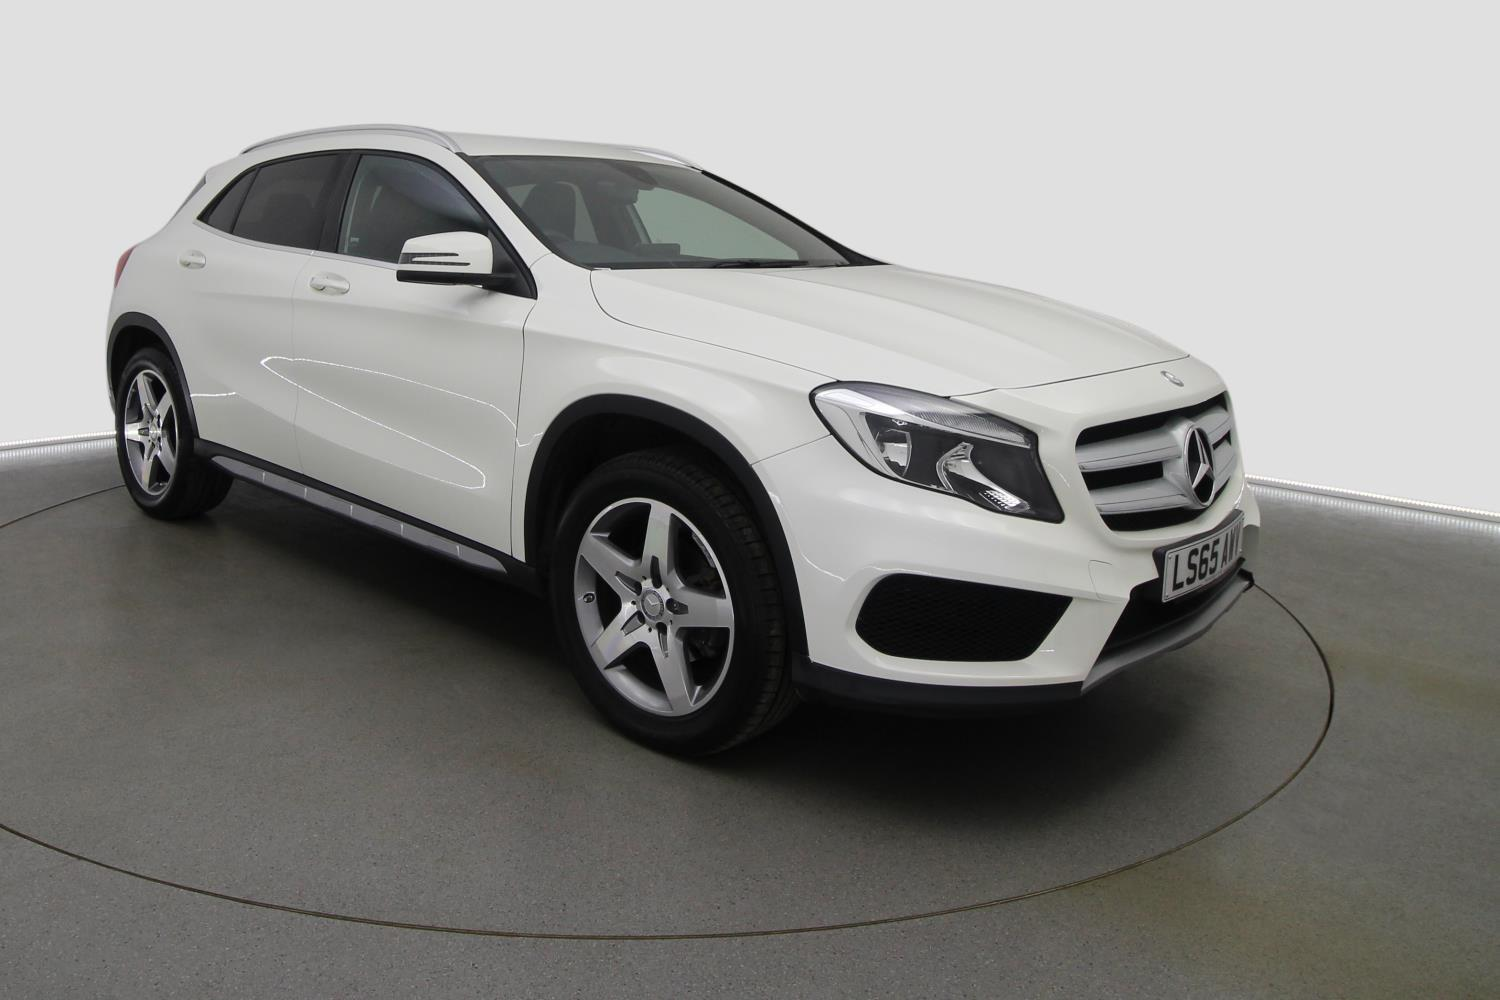 used mercedes benz gla gla 200d amg line 5dr diesel hatchback for sale vertu mercedes benz. Black Bedroom Furniture Sets. Home Design Ideas